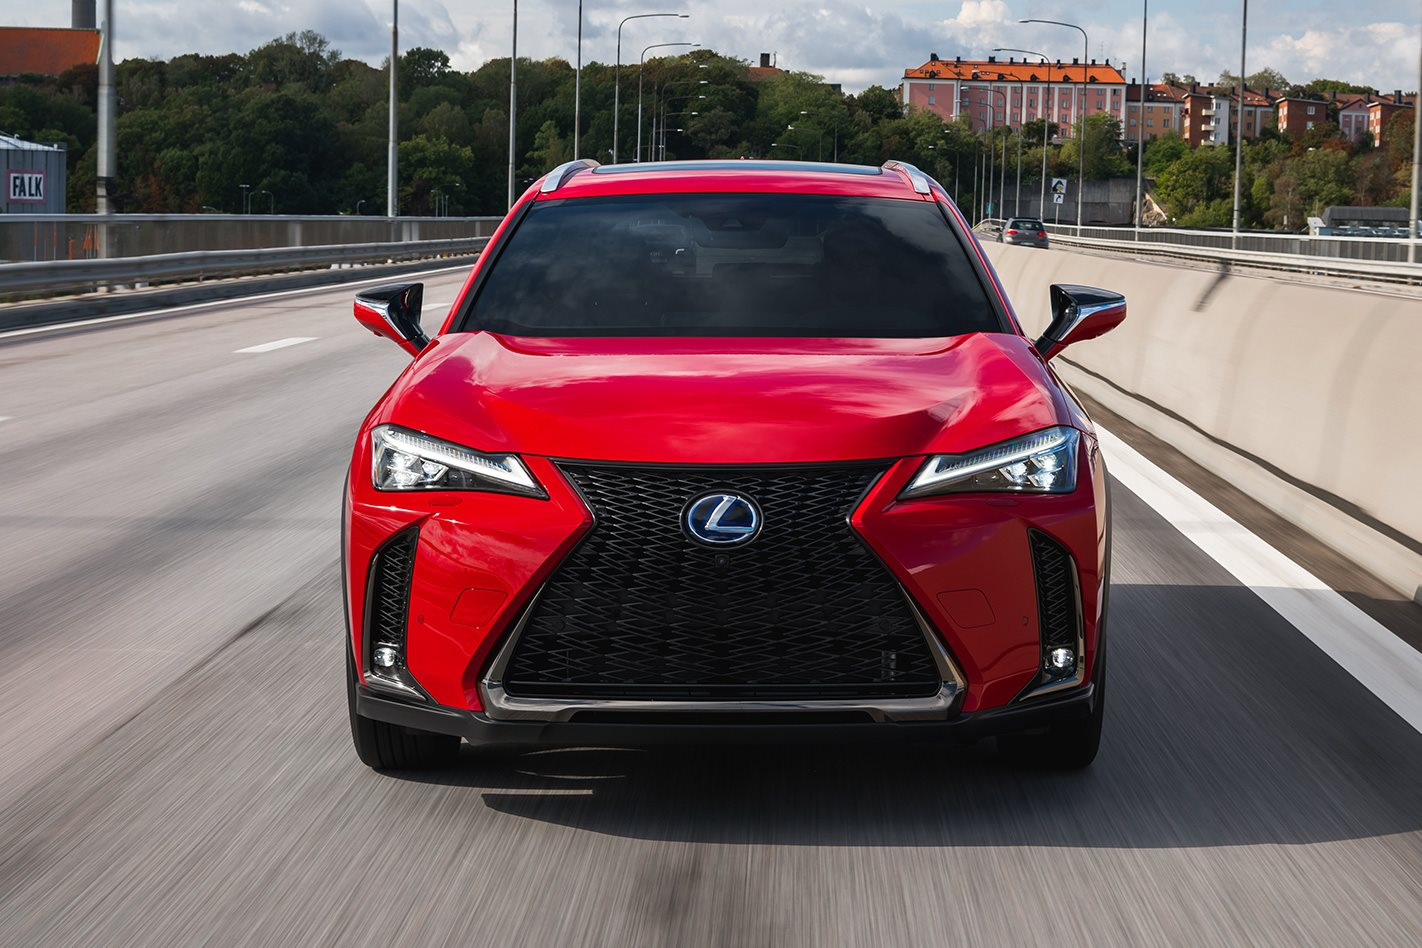 2019 Lexus UX: Price and features announced for new baby crossover